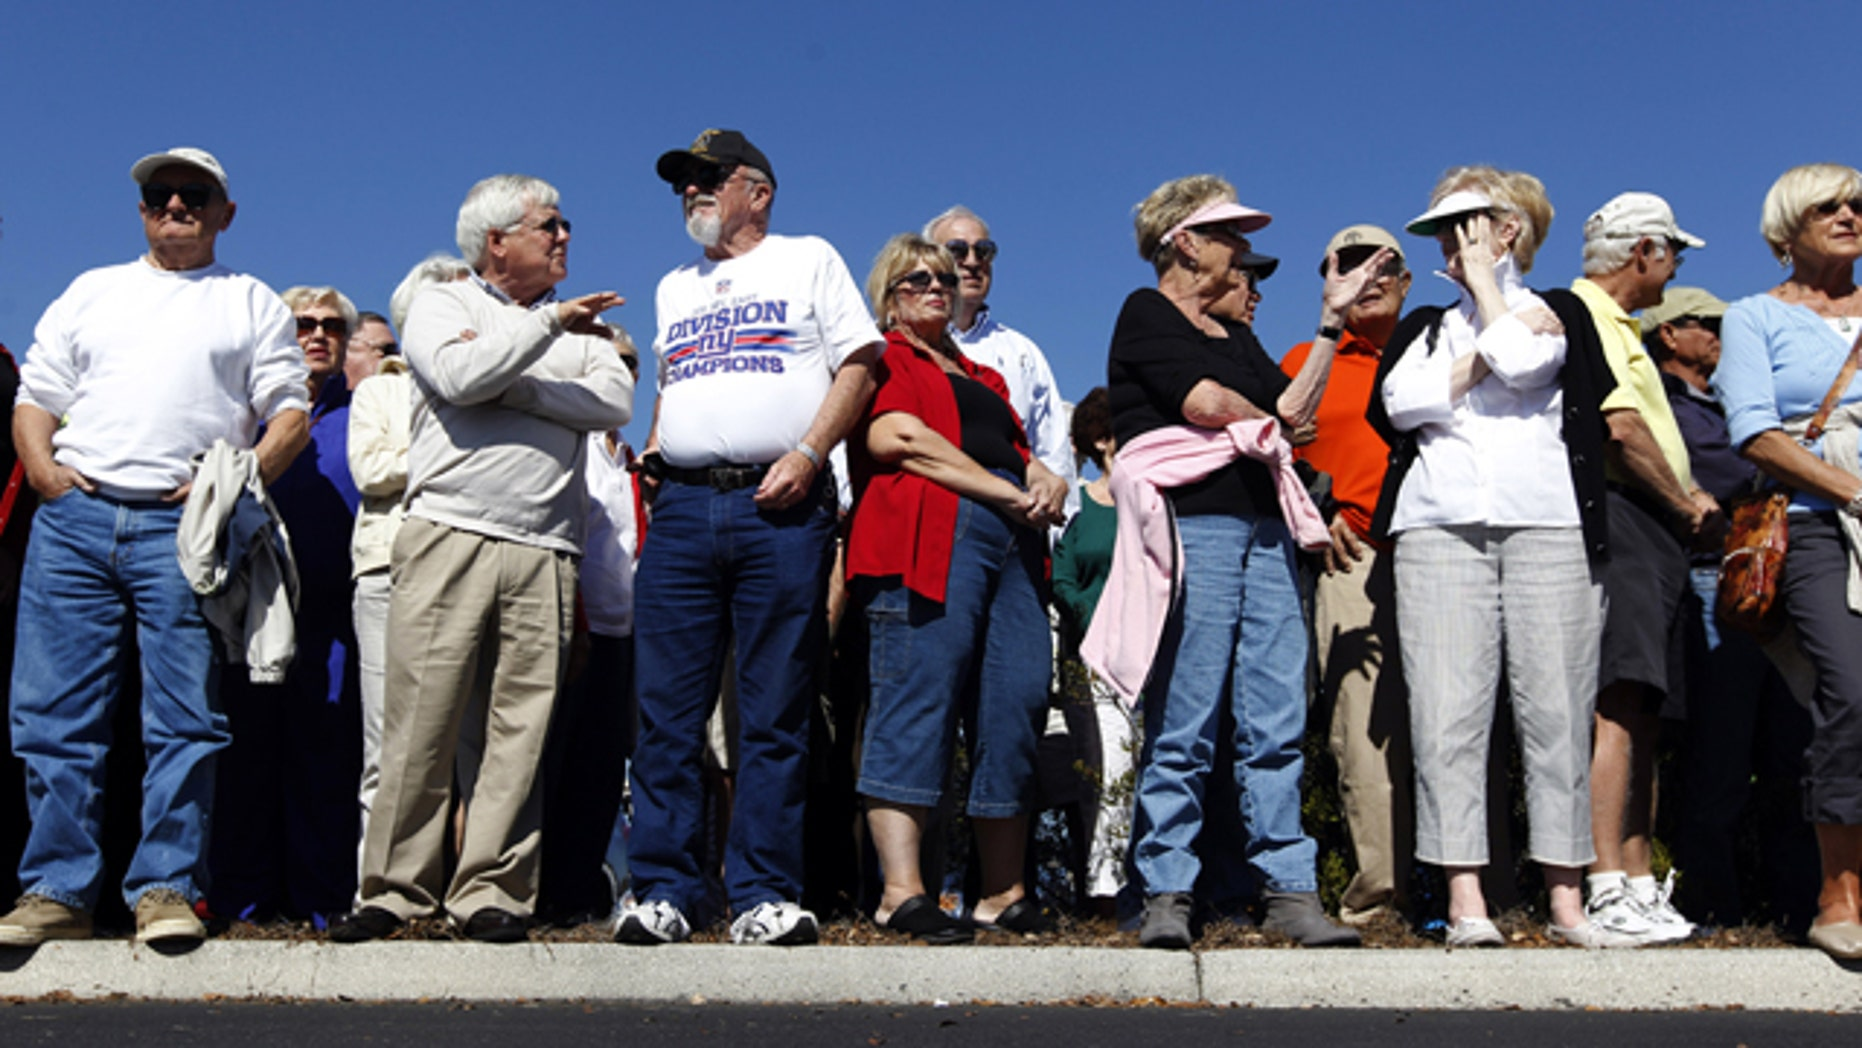 Jan. 29, 2012: Supporters wait for Republican presidential candidate former House Speaker Newt Gingrich to arrive at an event at the The Villages in Lady Lake, Fla.